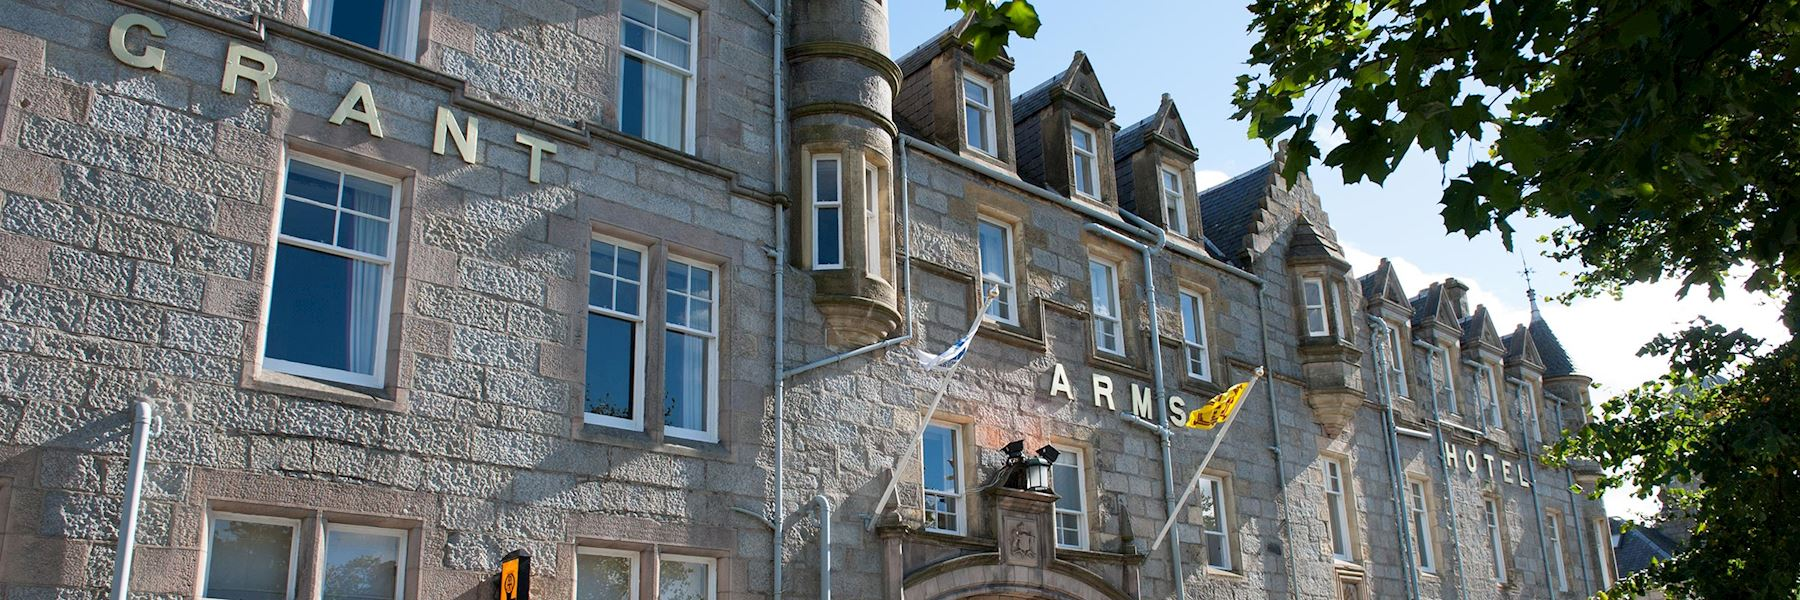 The Grant Arms Hotel   Hotels in The Cairngorms   Audley Travel